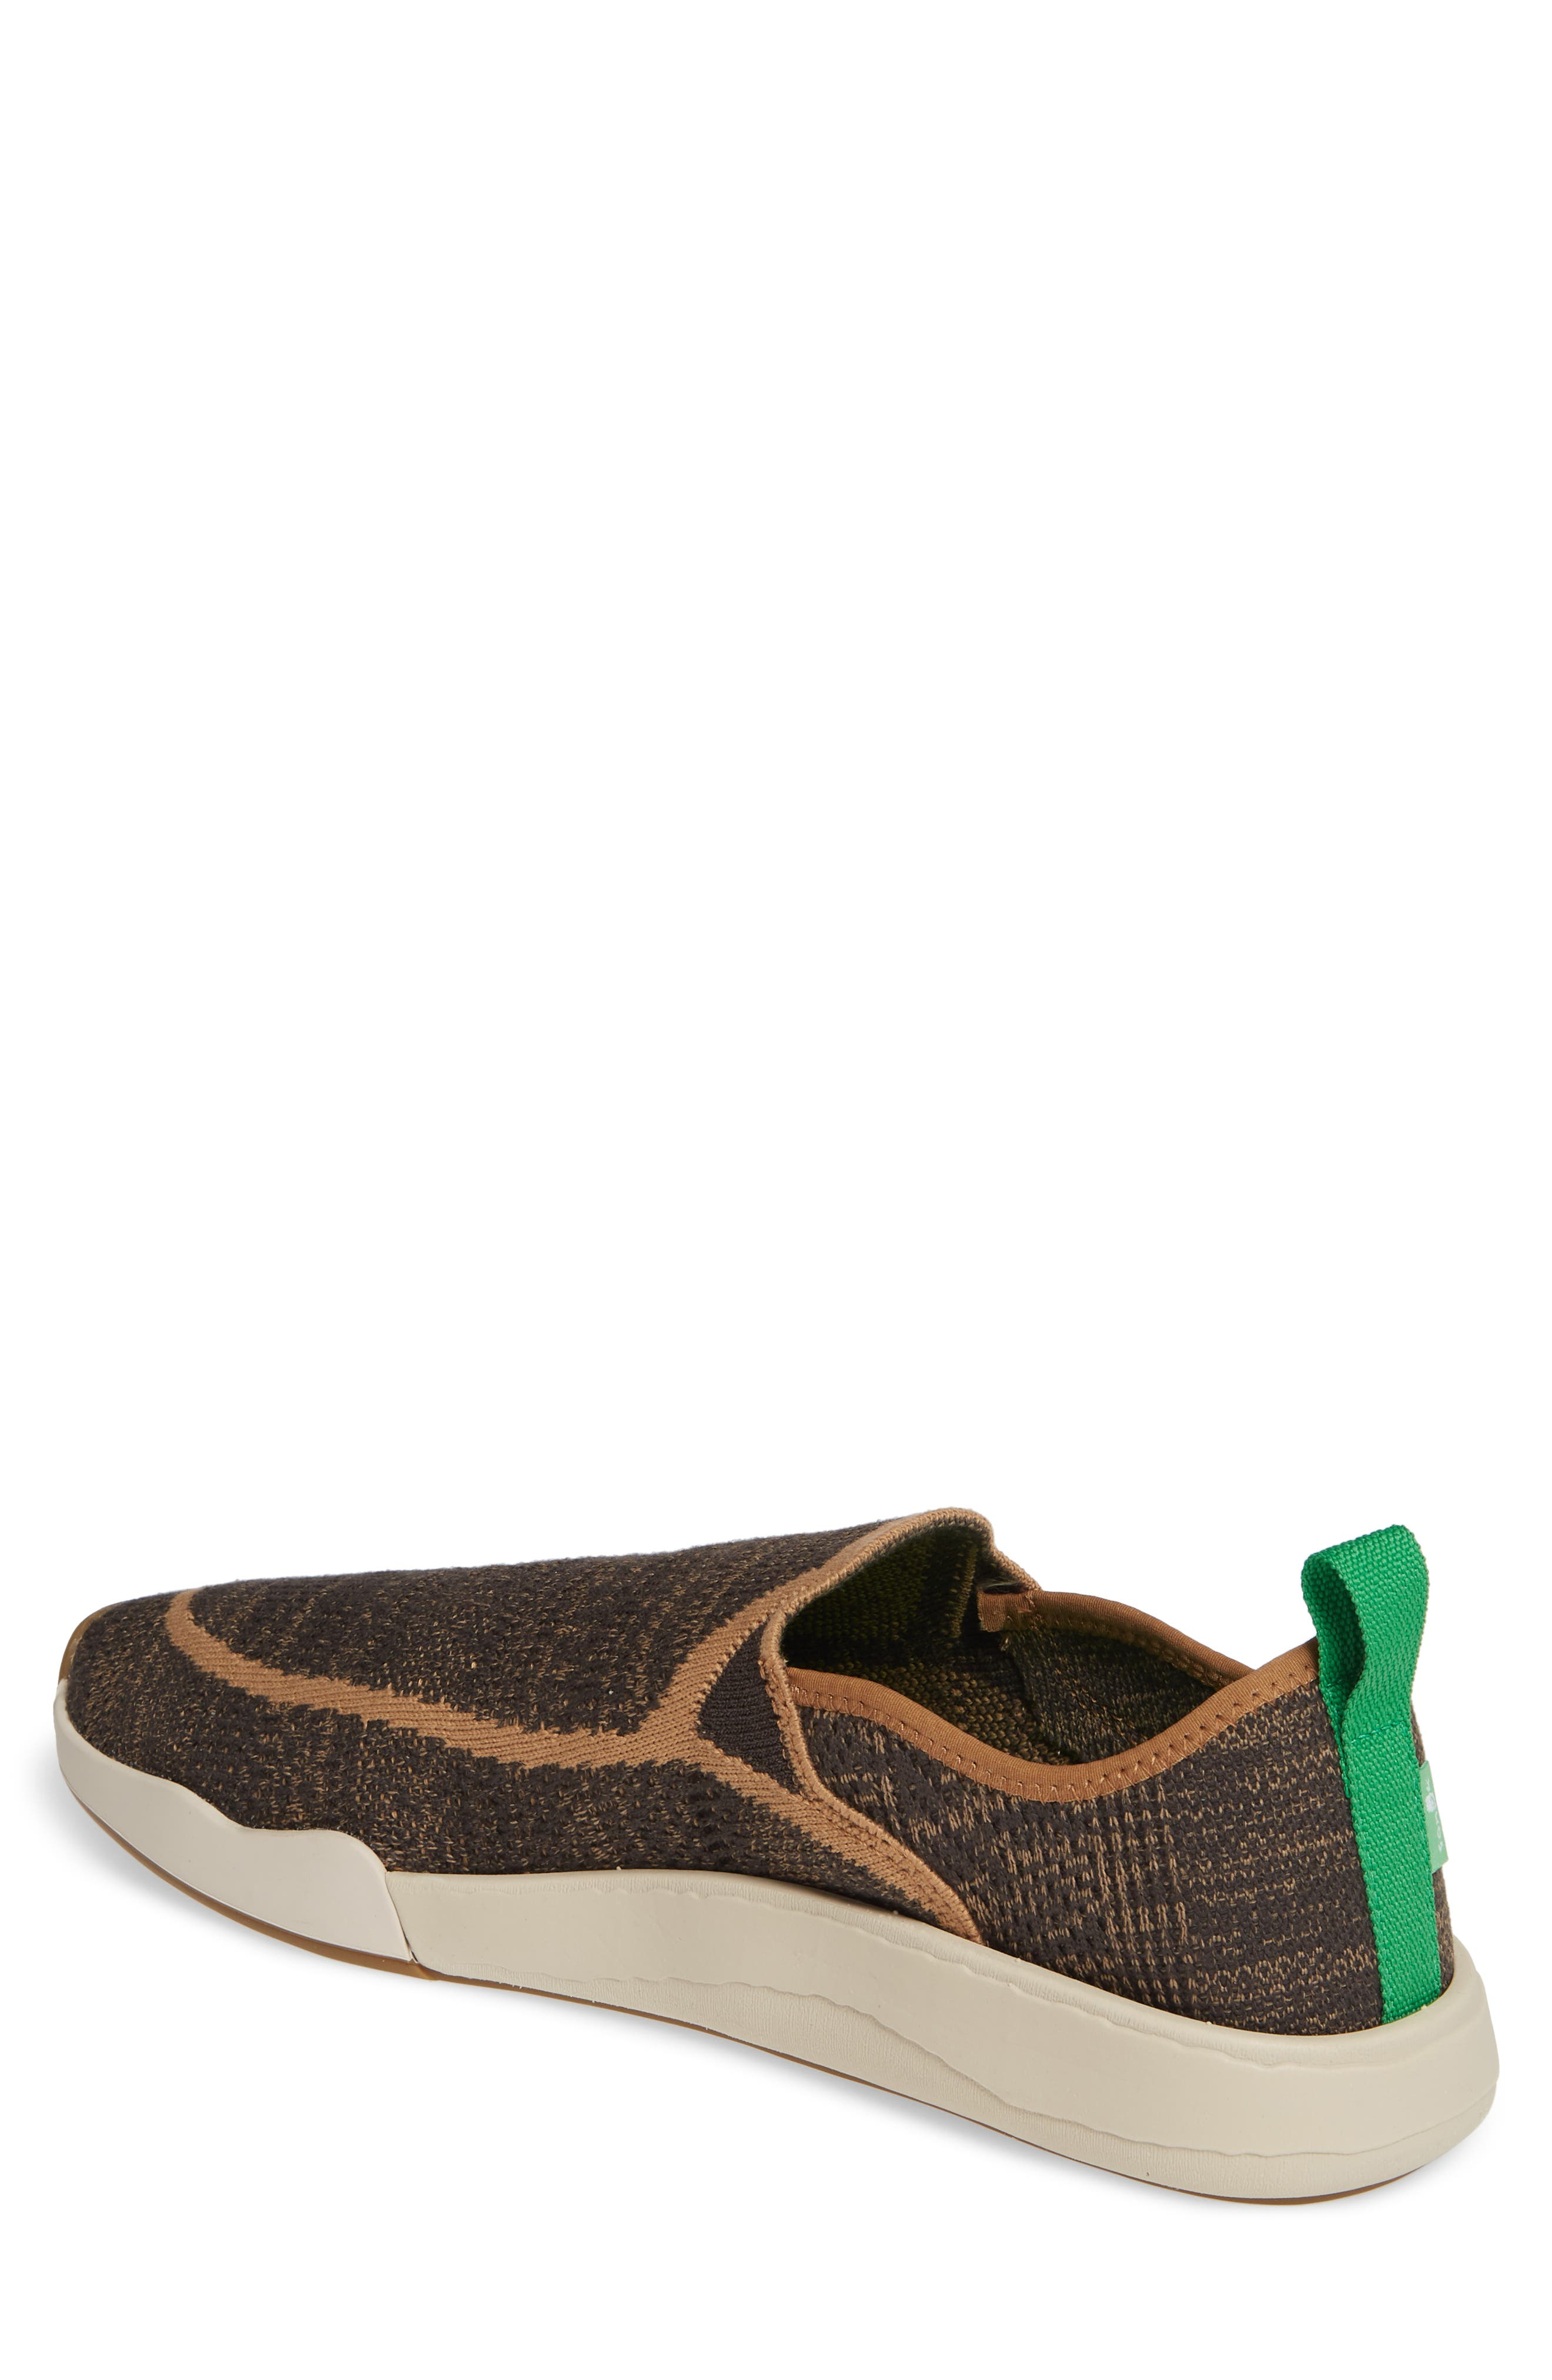 SANUK,                             Chiba Quest Knit Slip-On Sneaker,                             Alternate thumbnail 2, color,                             BROWN NATURAL